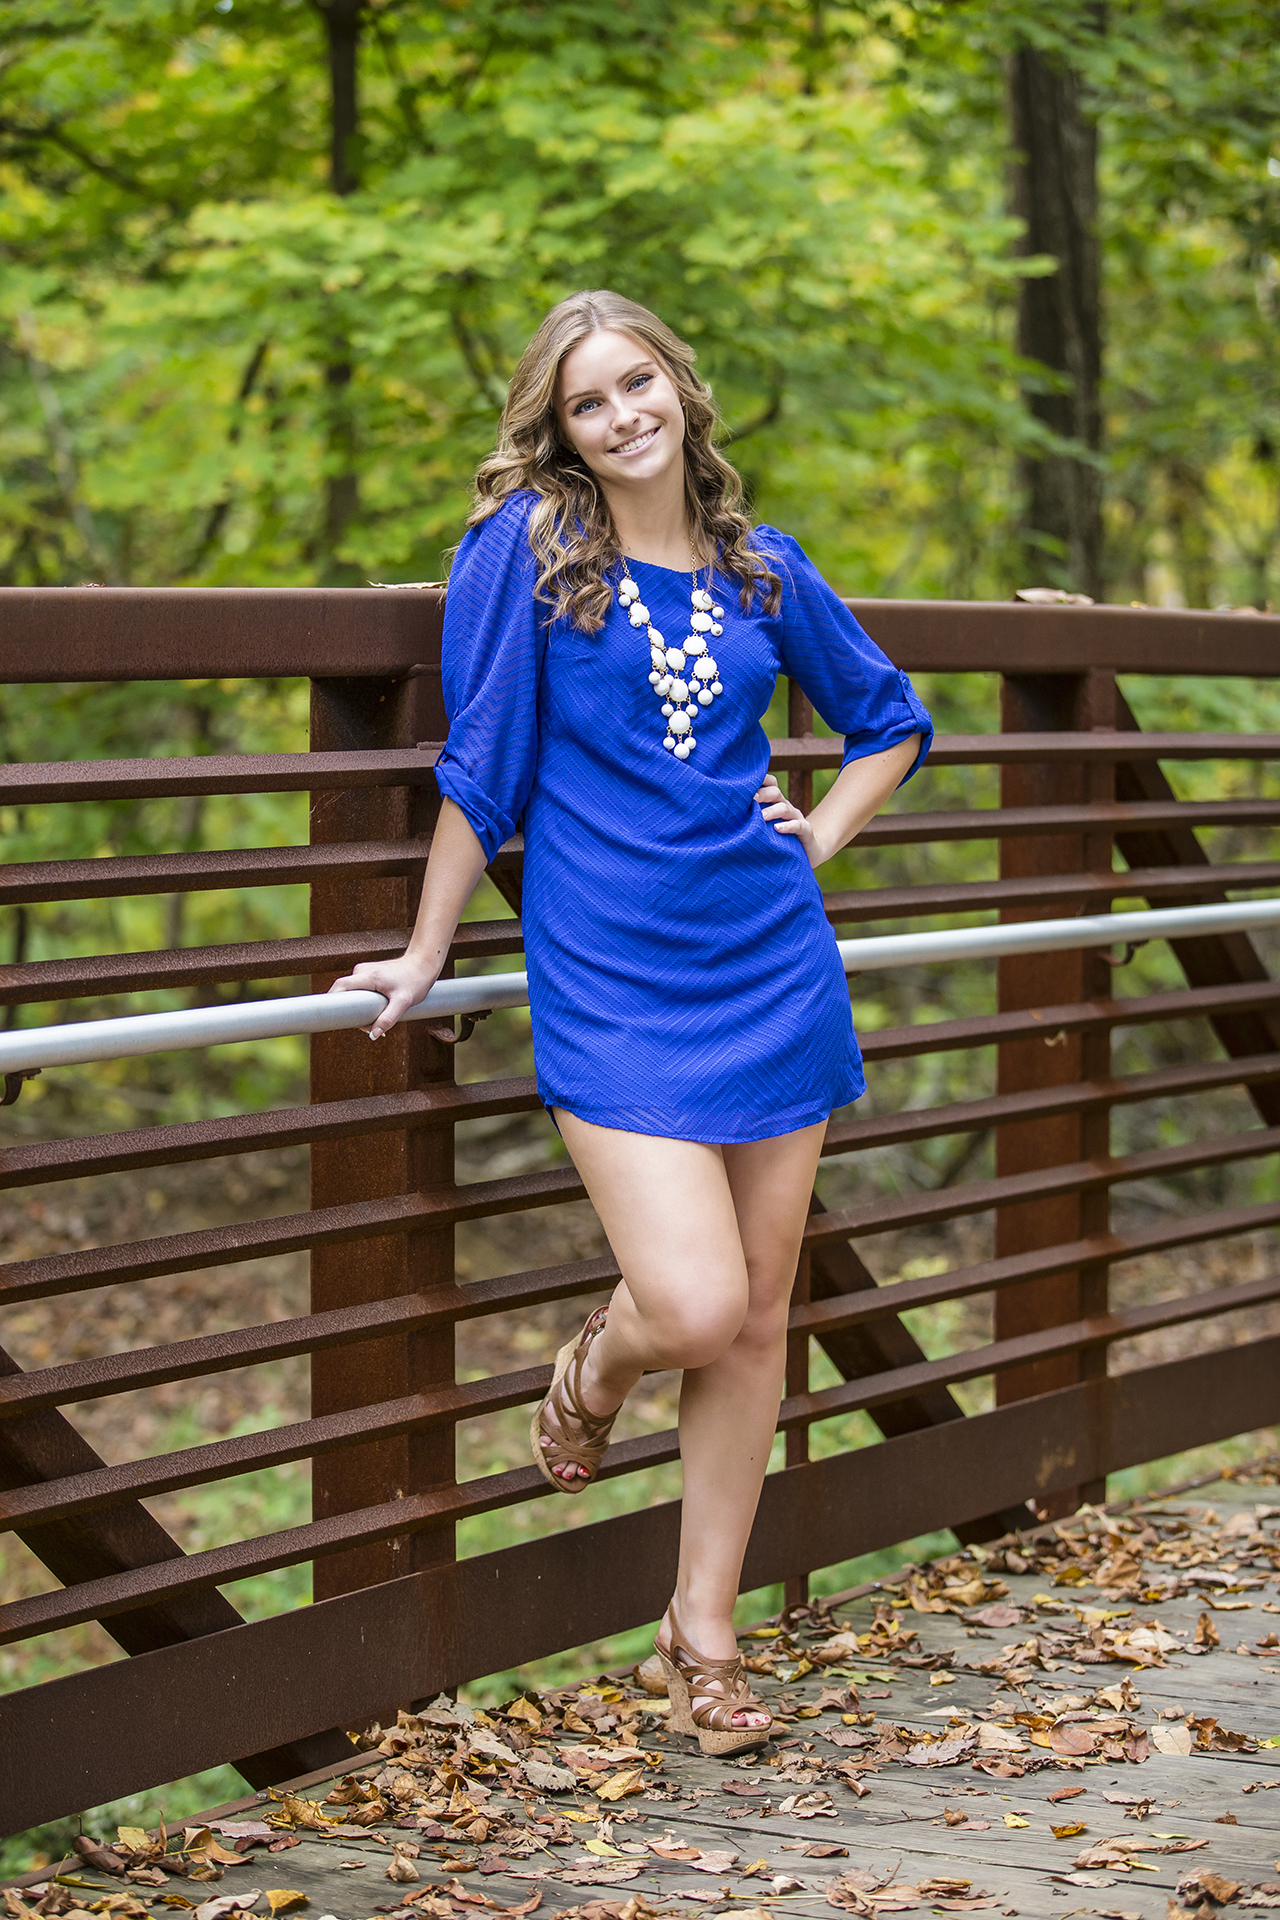 Seniors - MJ Gowen Photography